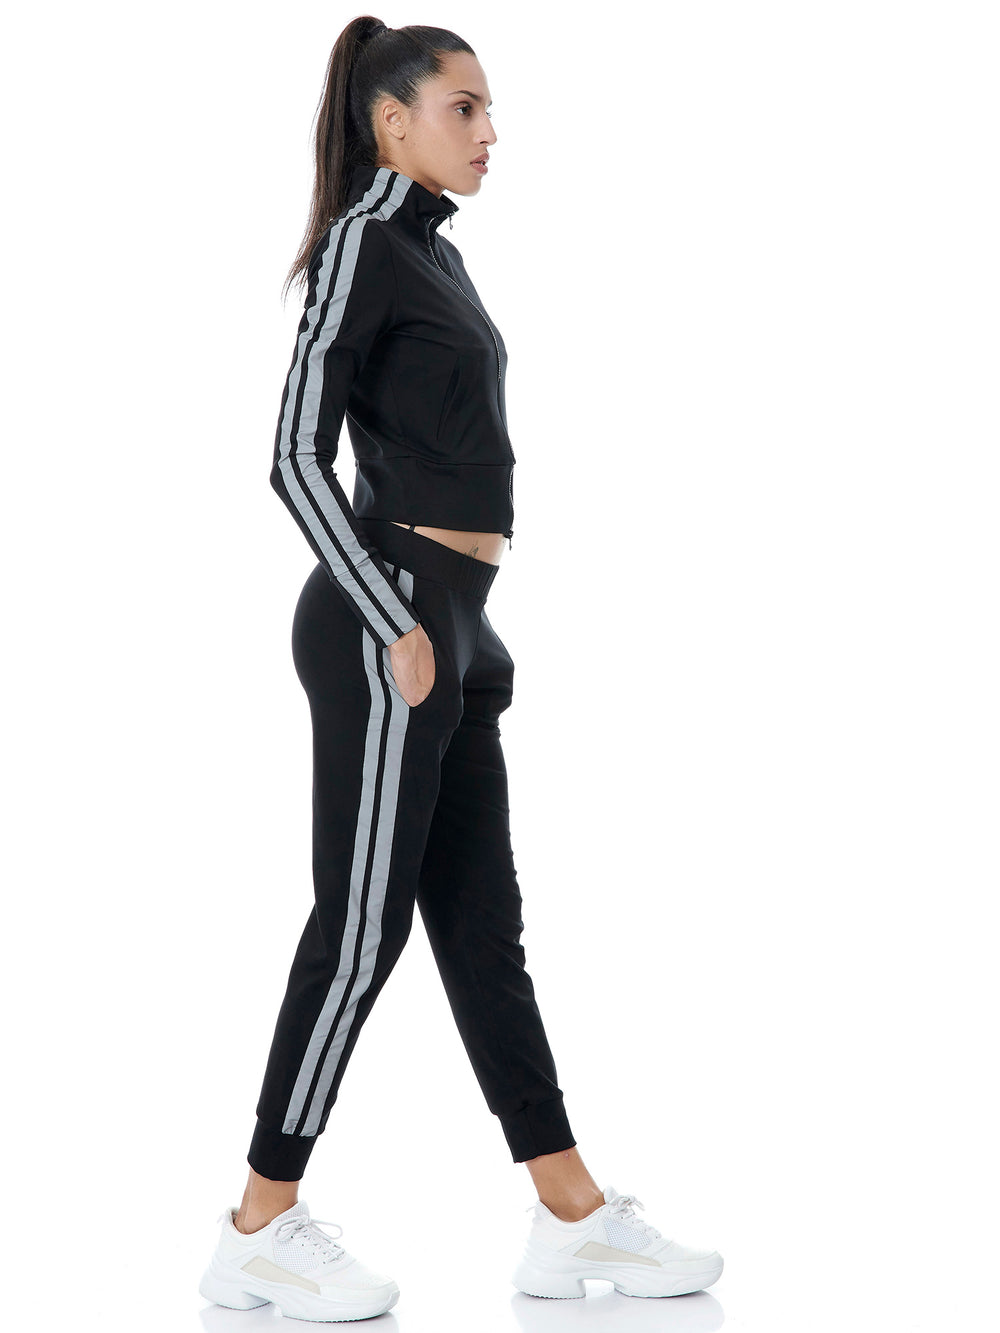 BAYA reflective runner jacket black